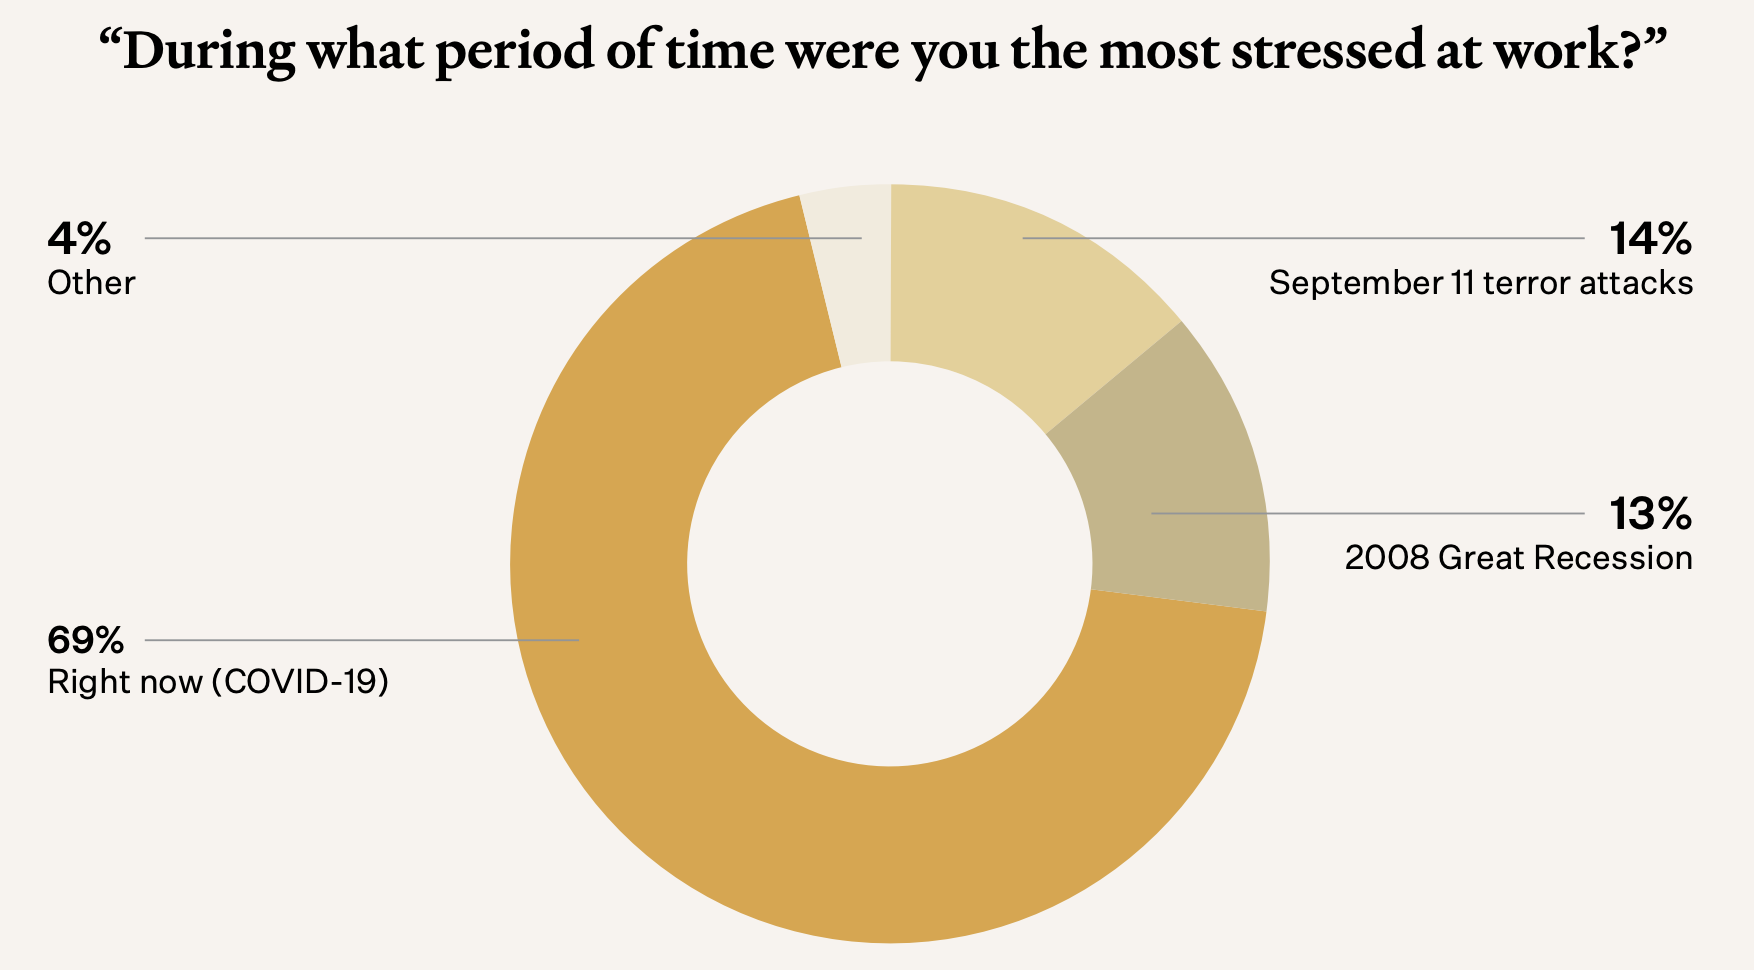 During what period of time were you the most stressed at work?